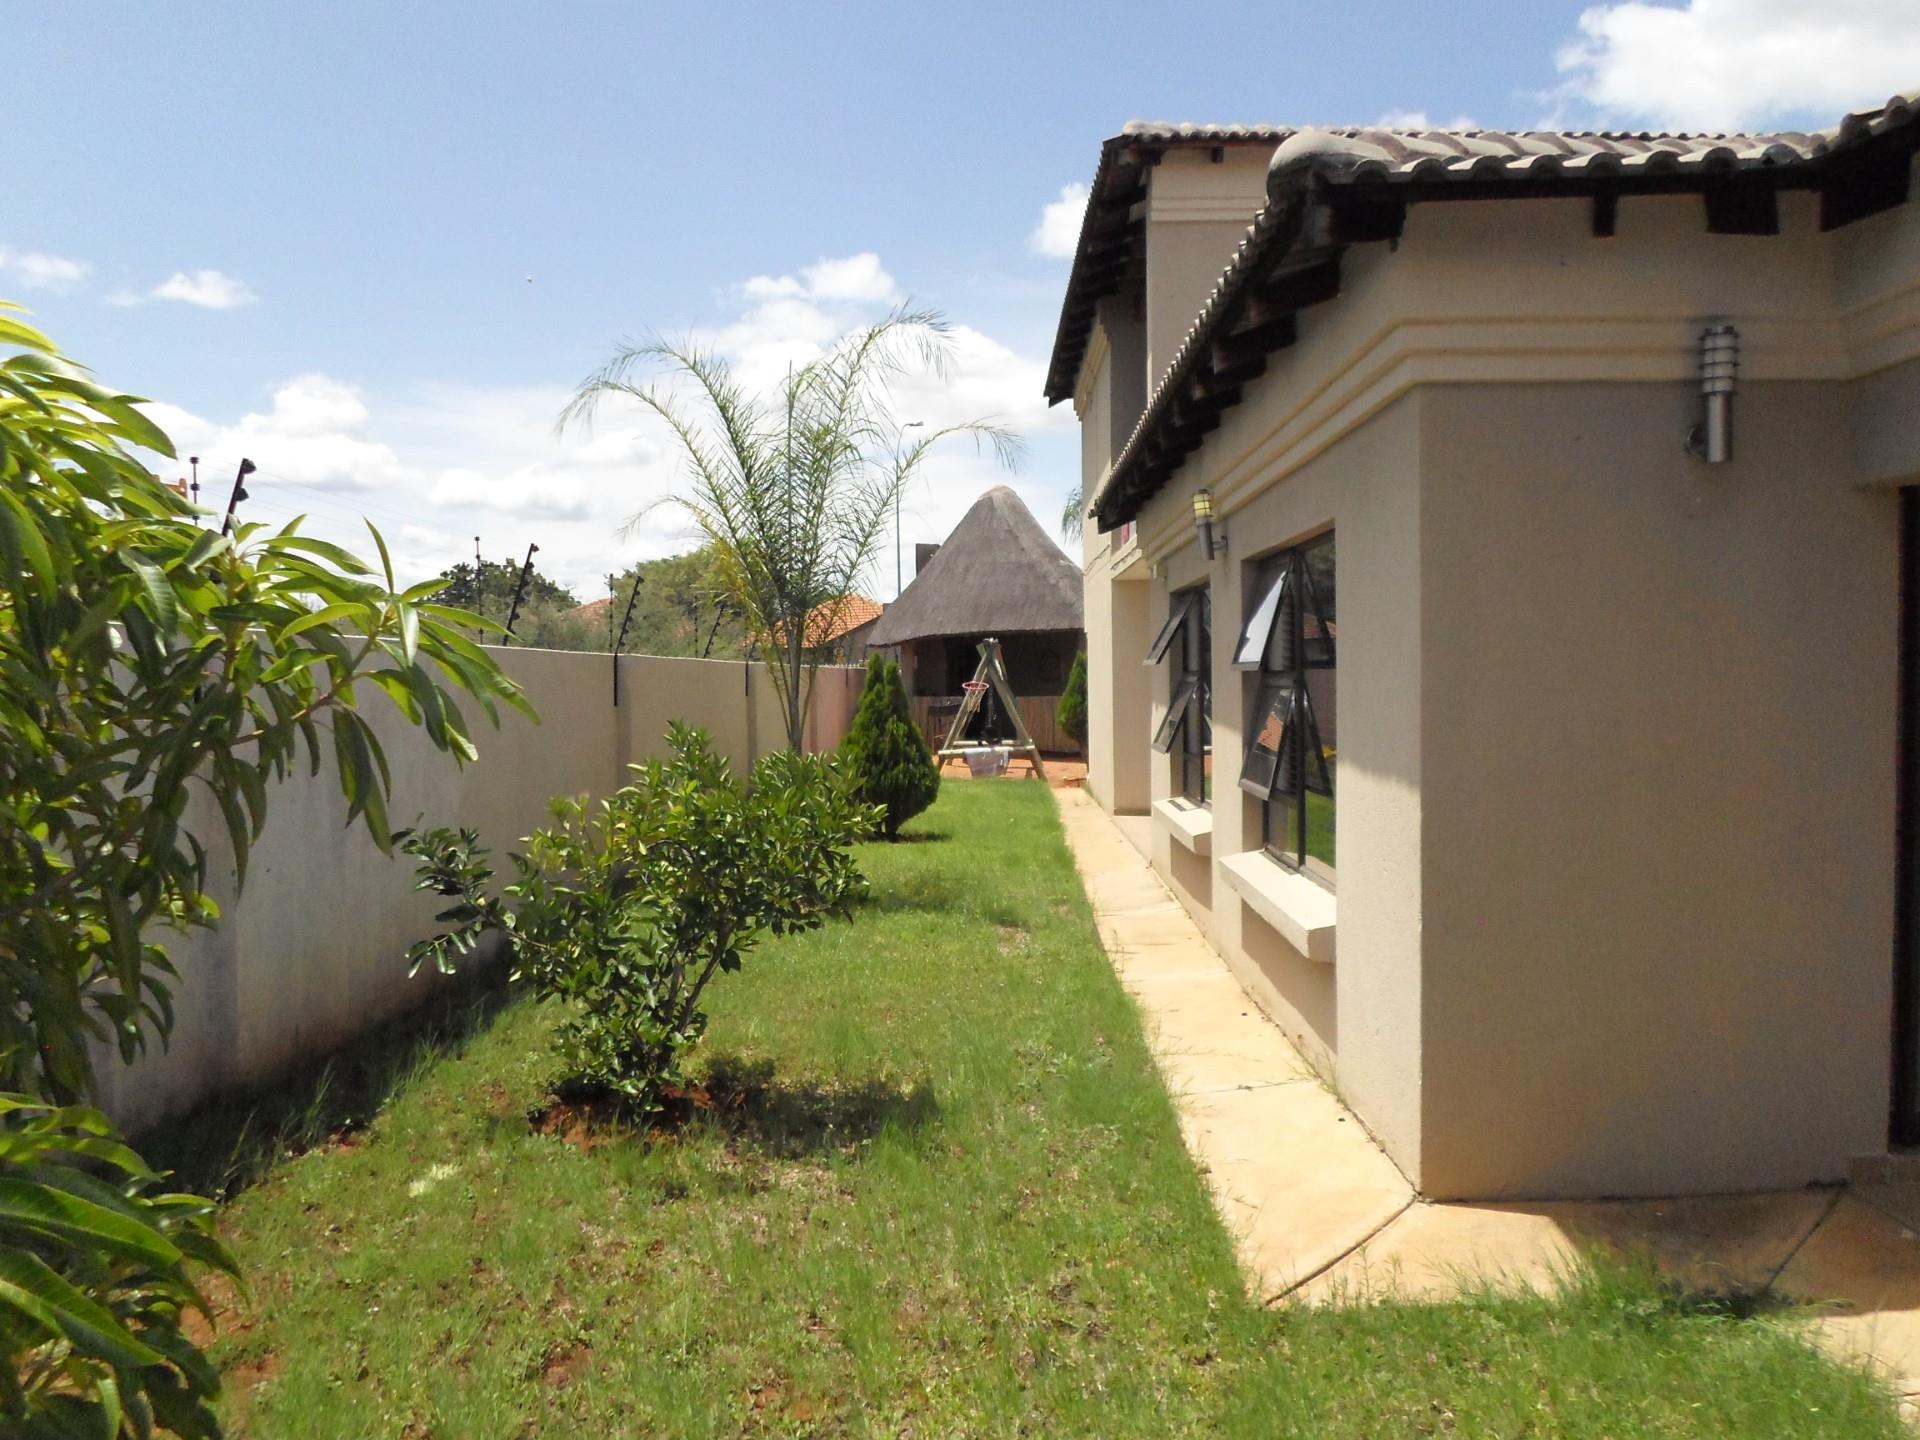 4 Bedroom House To Rent in Lephalale